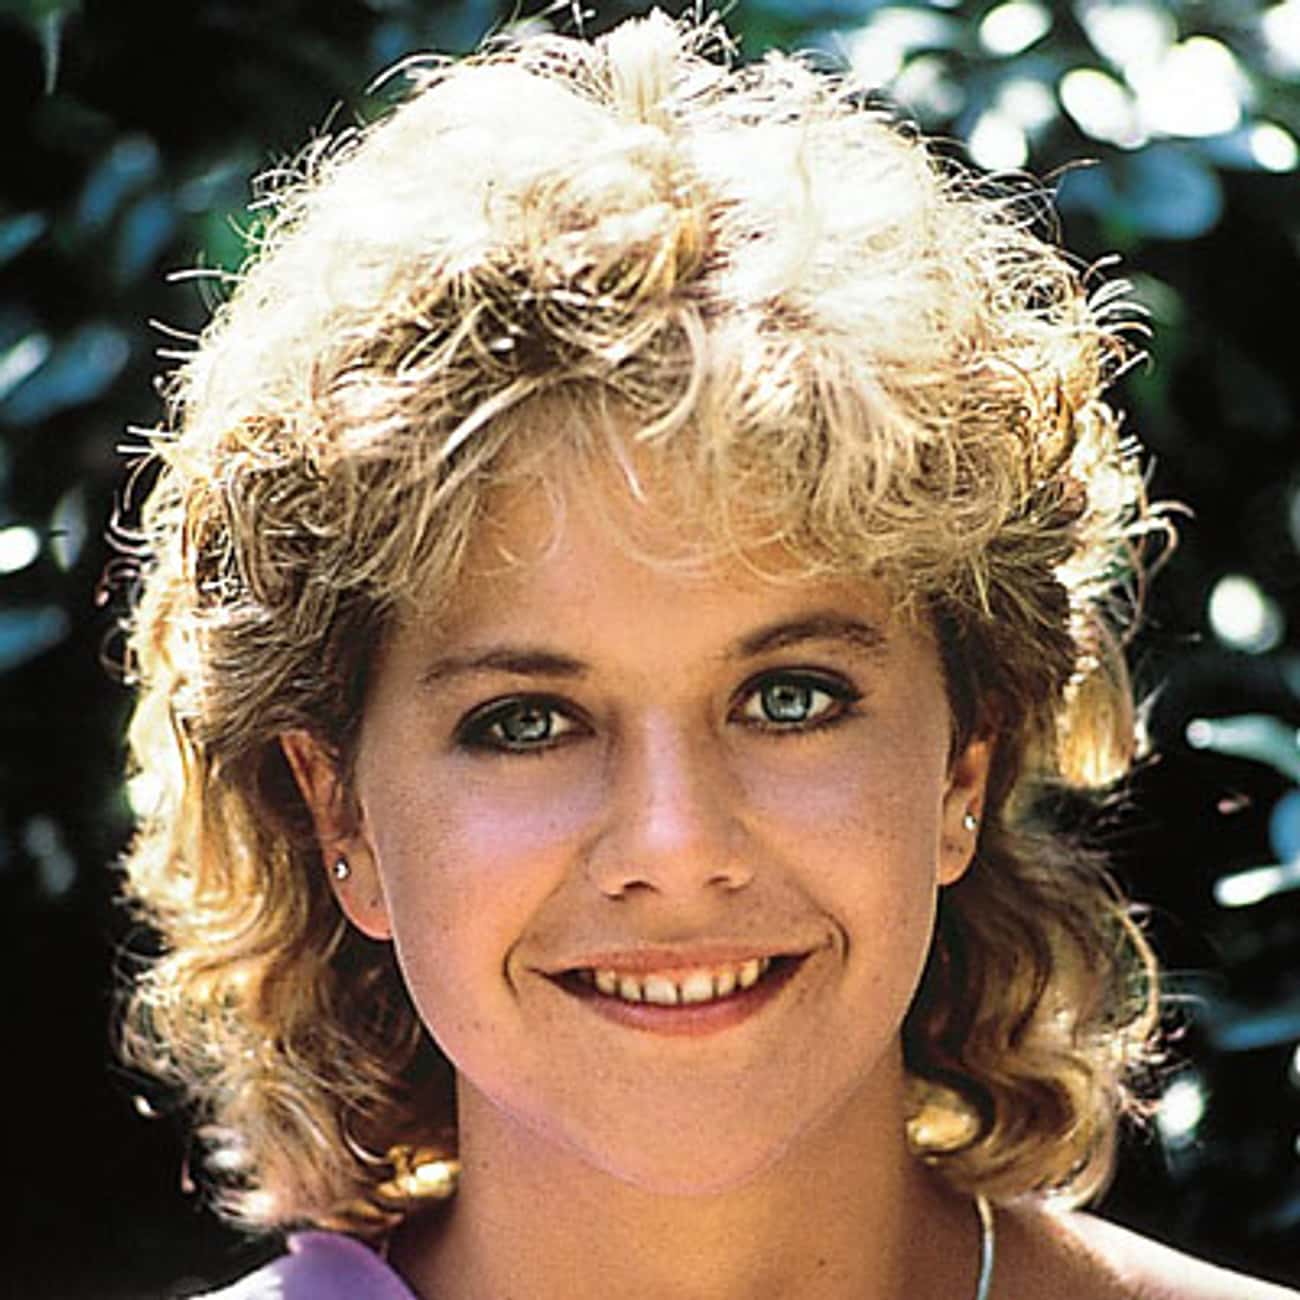 Young Meg Ryan Closeup Headsho is listed (or ranked) 3 on the list 18 Pictures of Young Meg Ryan